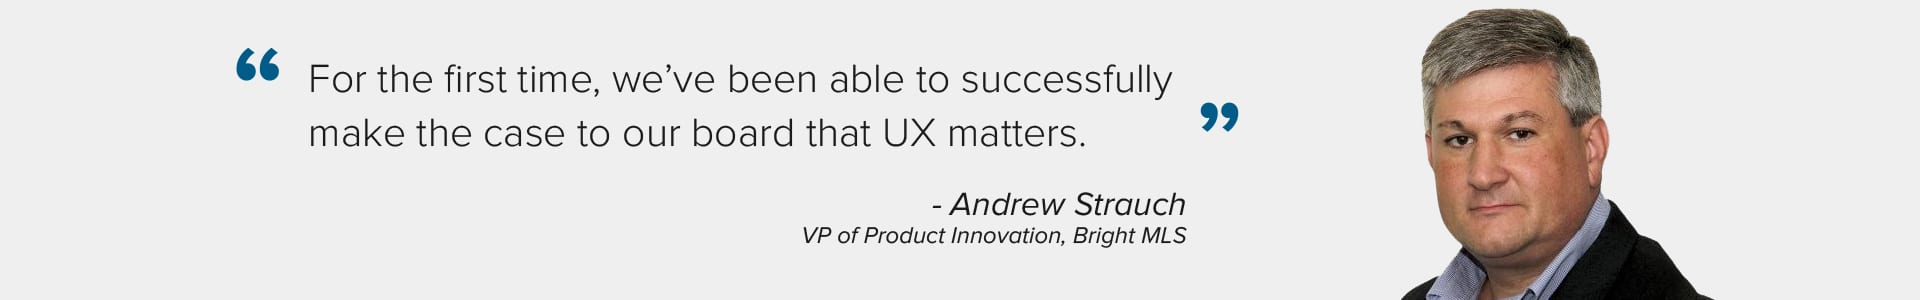 Quote from Andrew Strauch